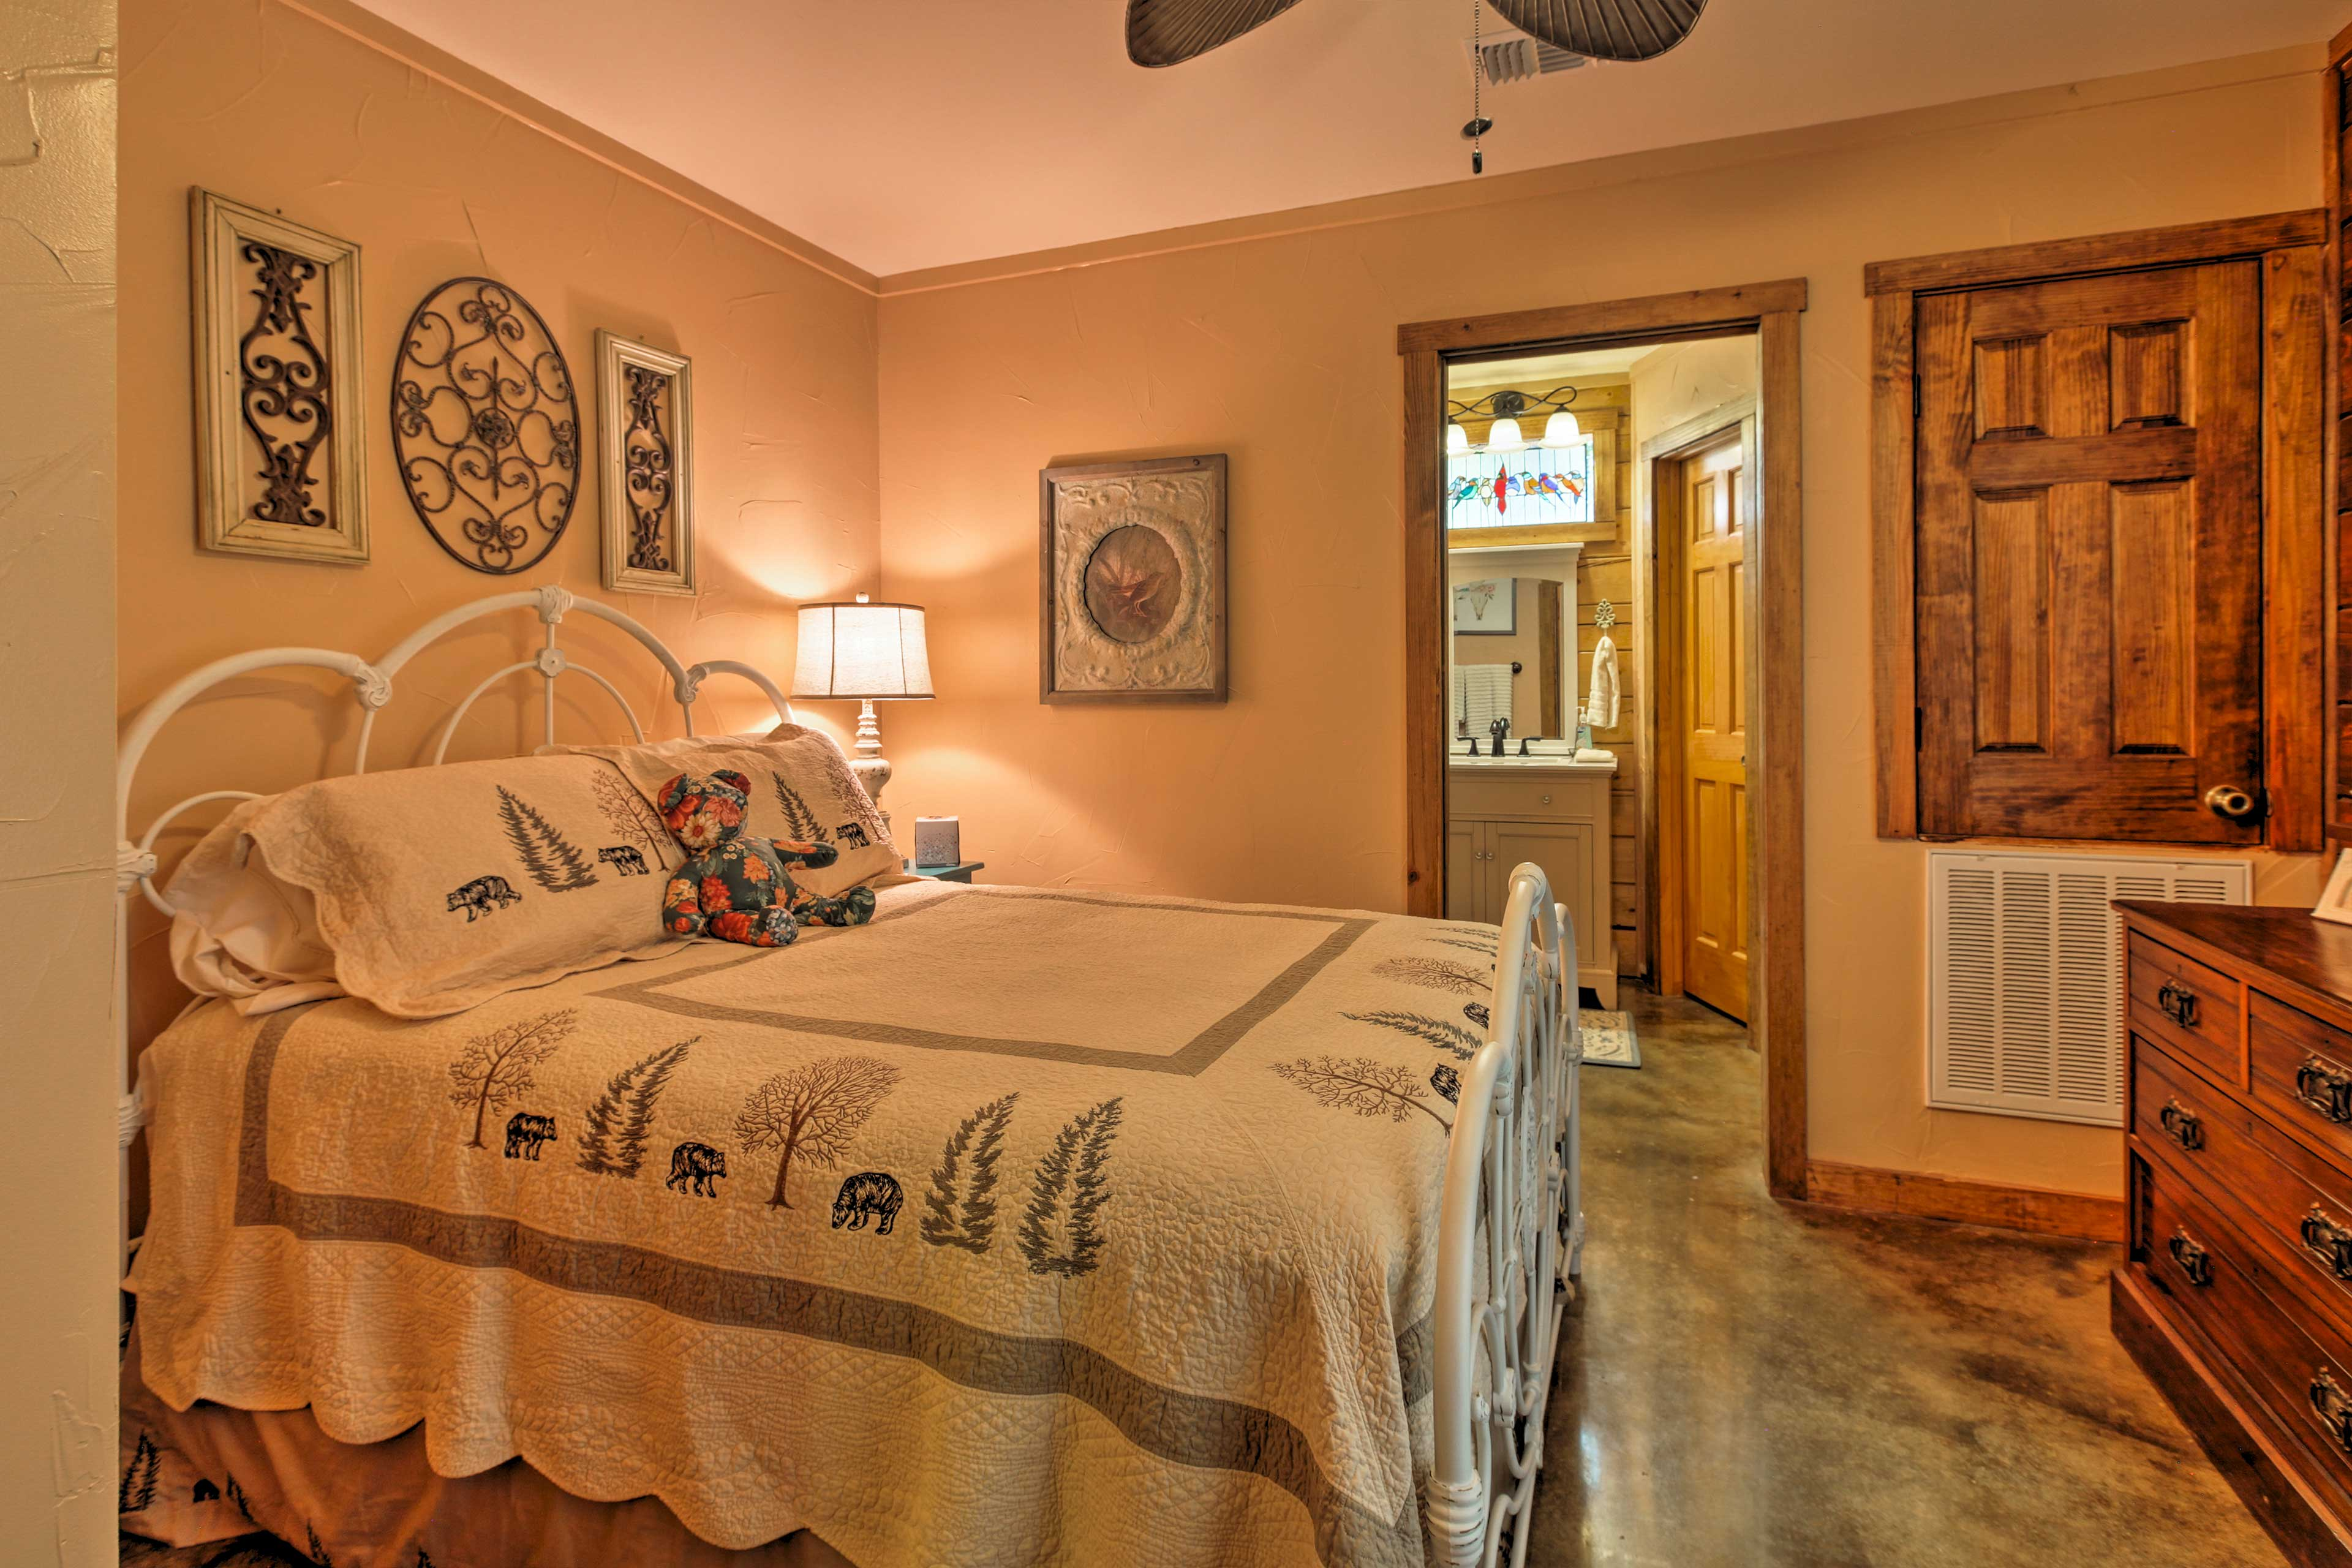 Drift off into dreamland in bedroom 2 boasting a full bed!